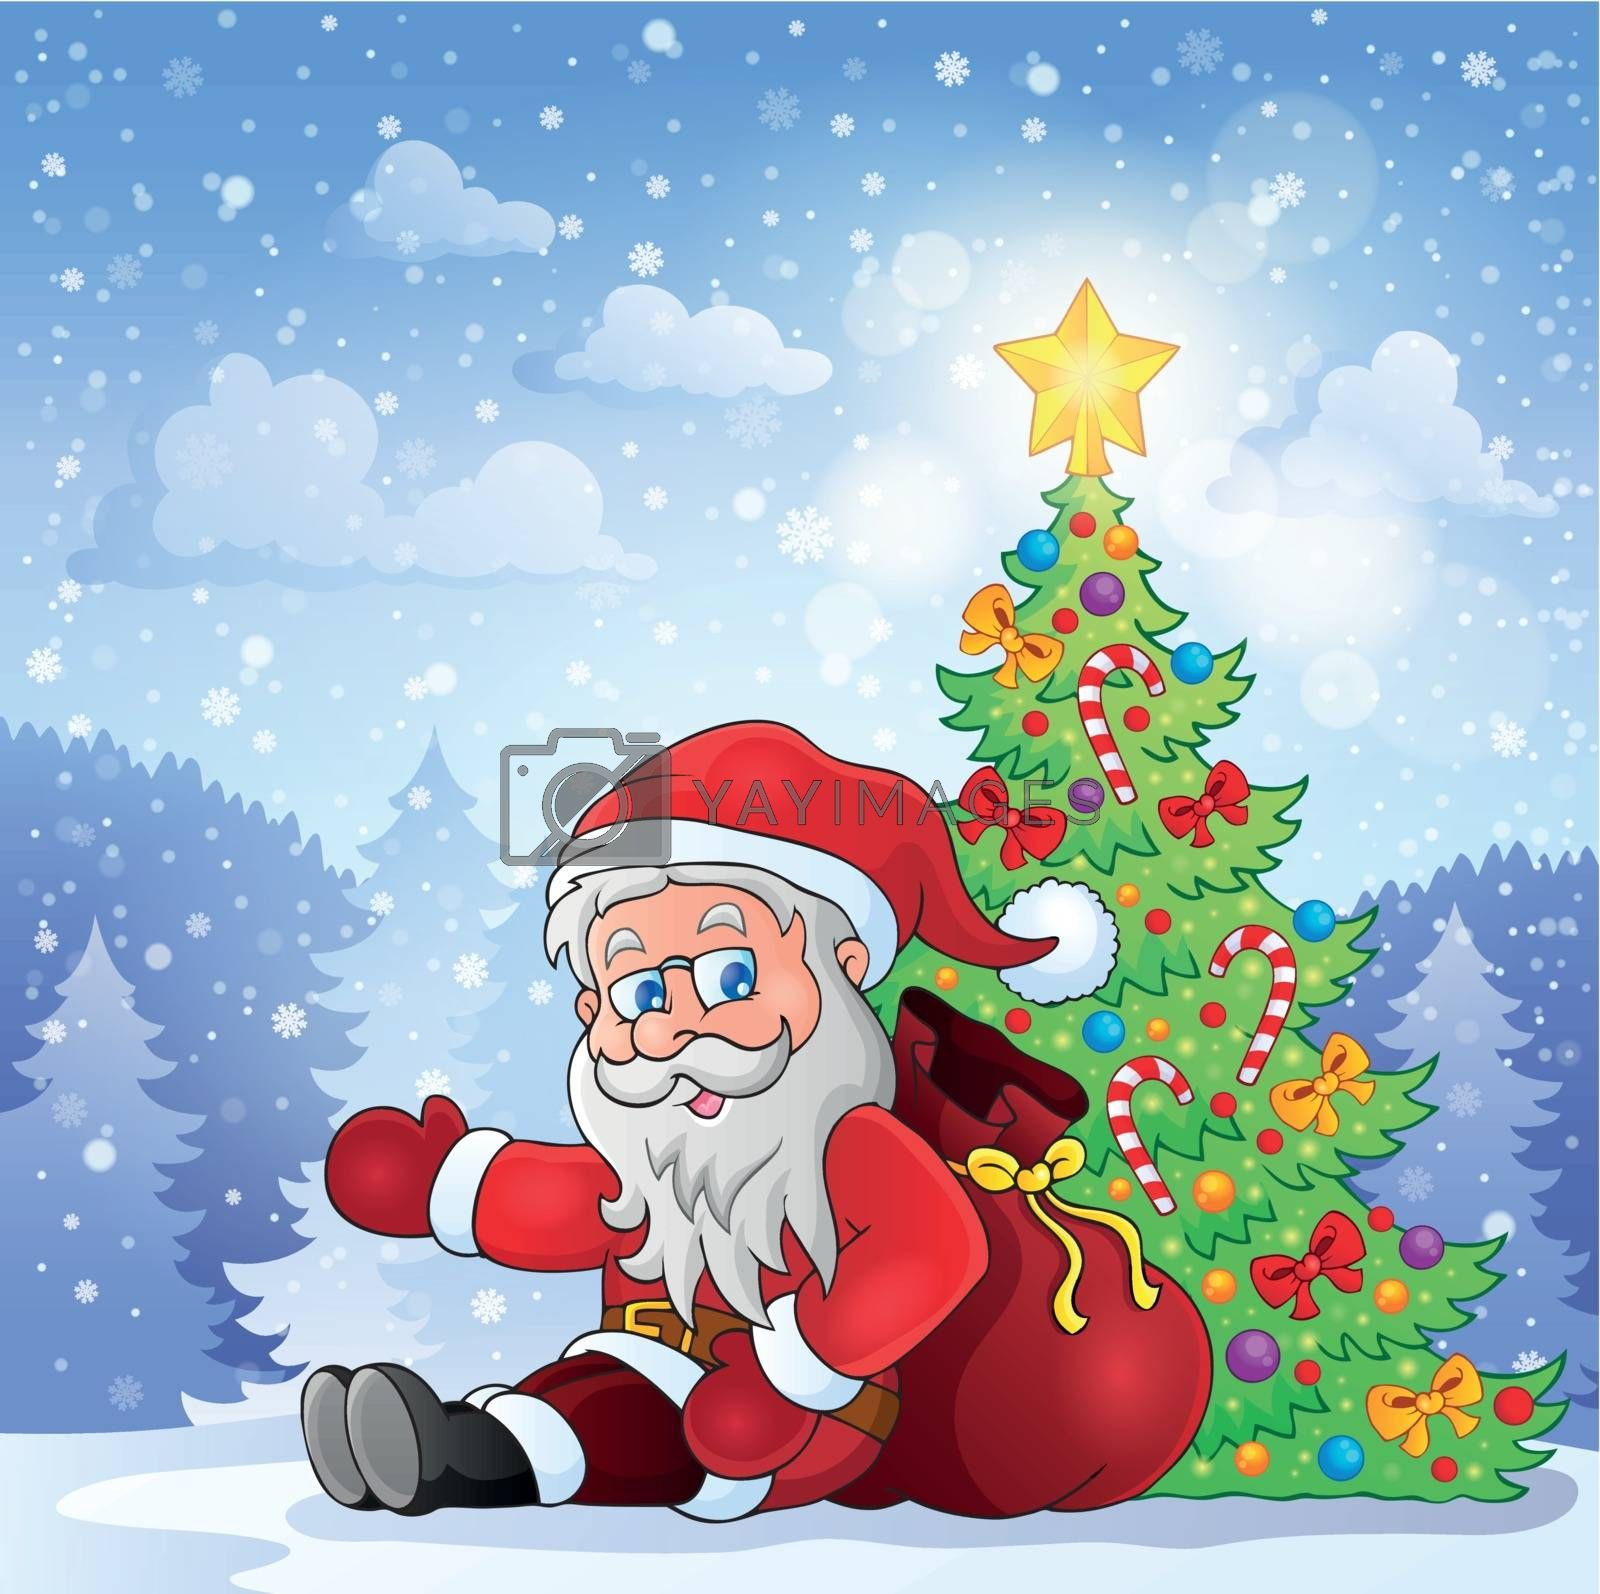 Santa Claus in snowy weather - eps10 vector illustration.